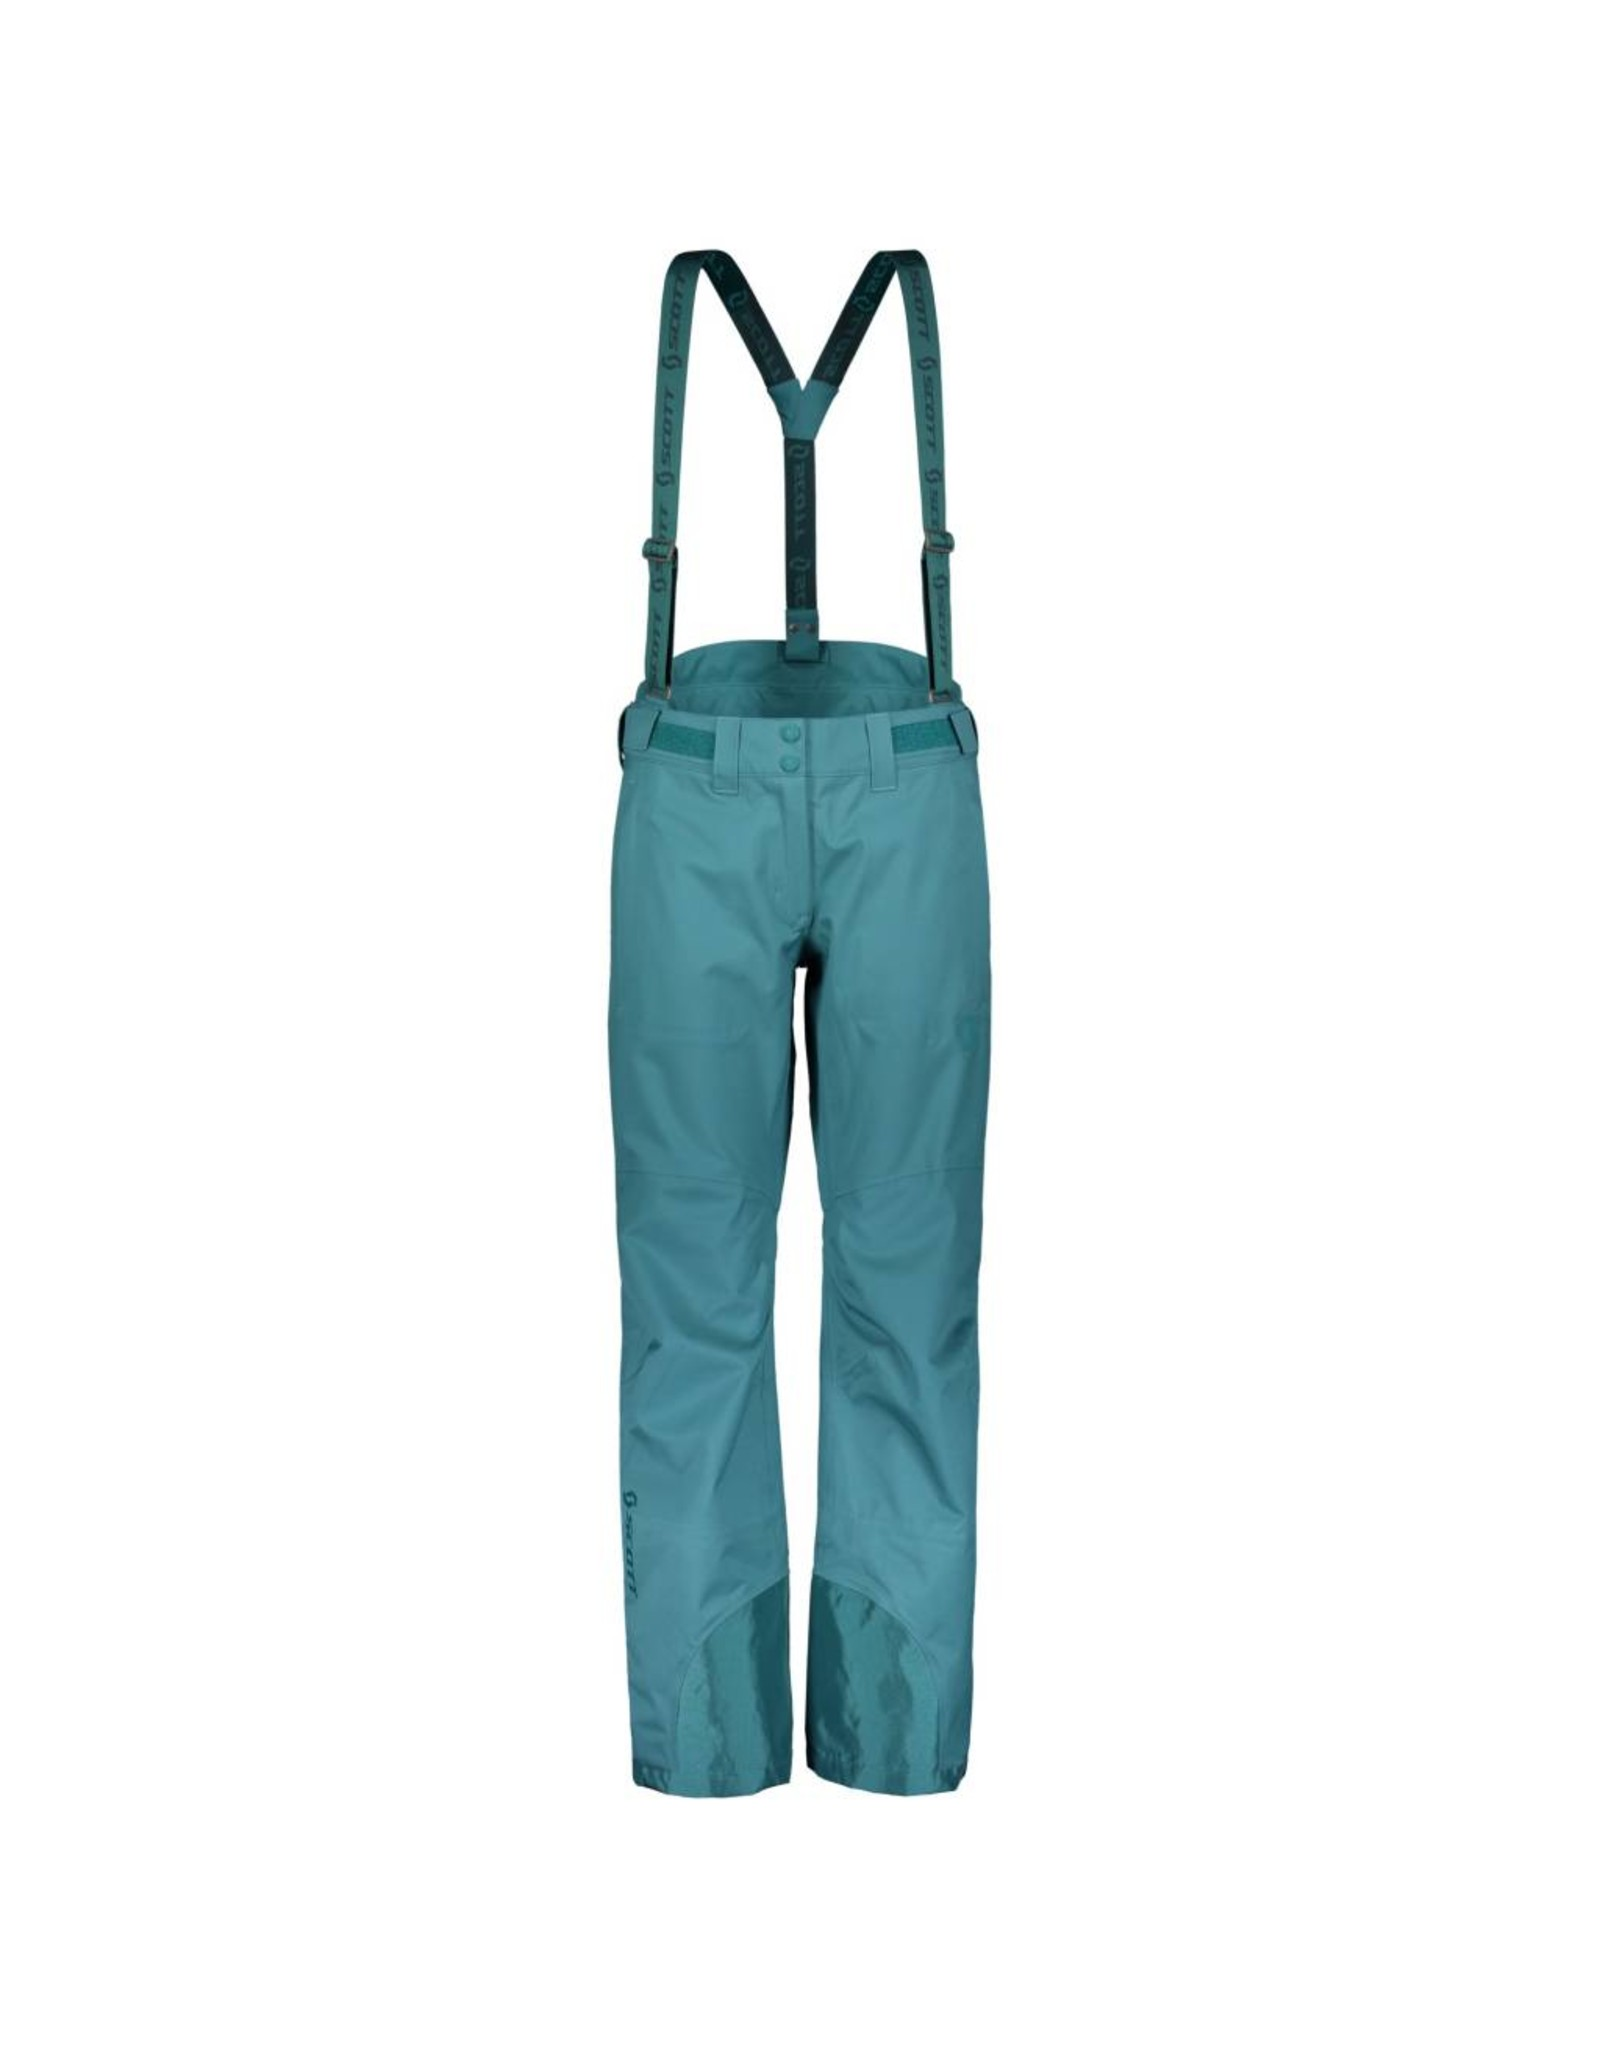 Scott Pant W Explorair 3L 19